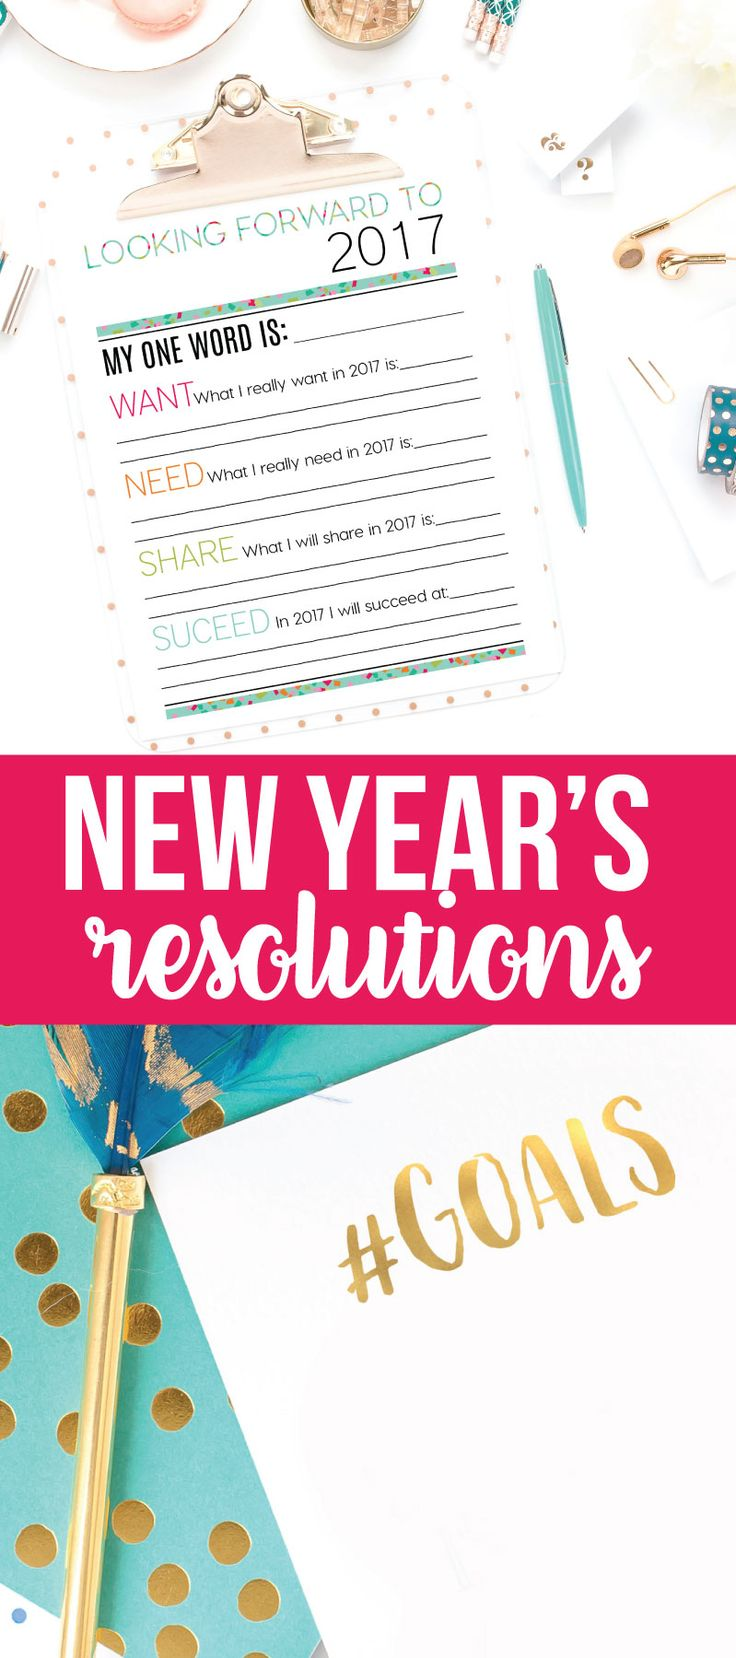 Holidays: Looking Forward to 2017 - New Year's Eve Resolutions Printable from thirtyhandmadedays.com